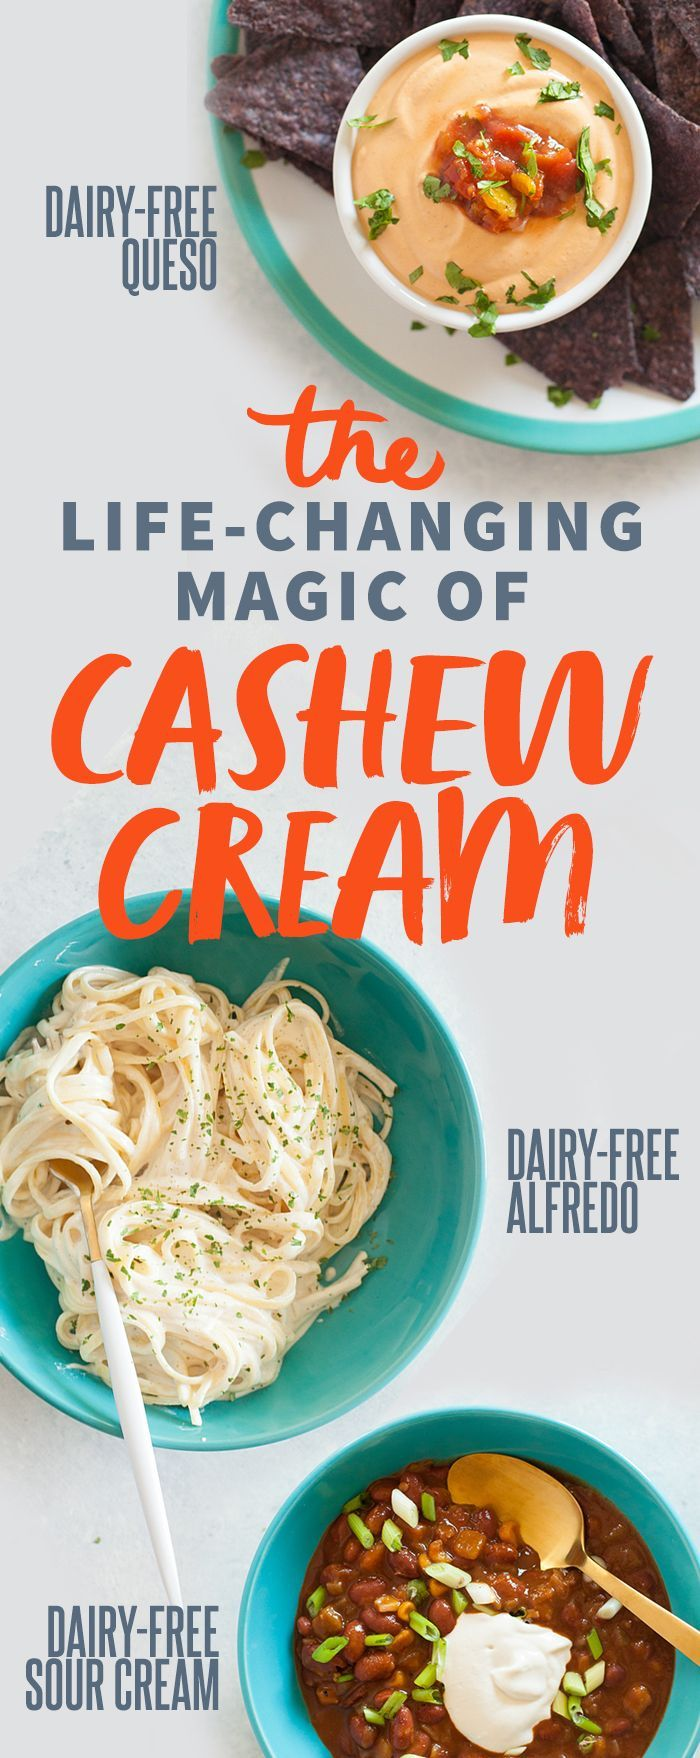 The life-changing magic of cashew cream from @wholefully - with 7 different incredible recipes!